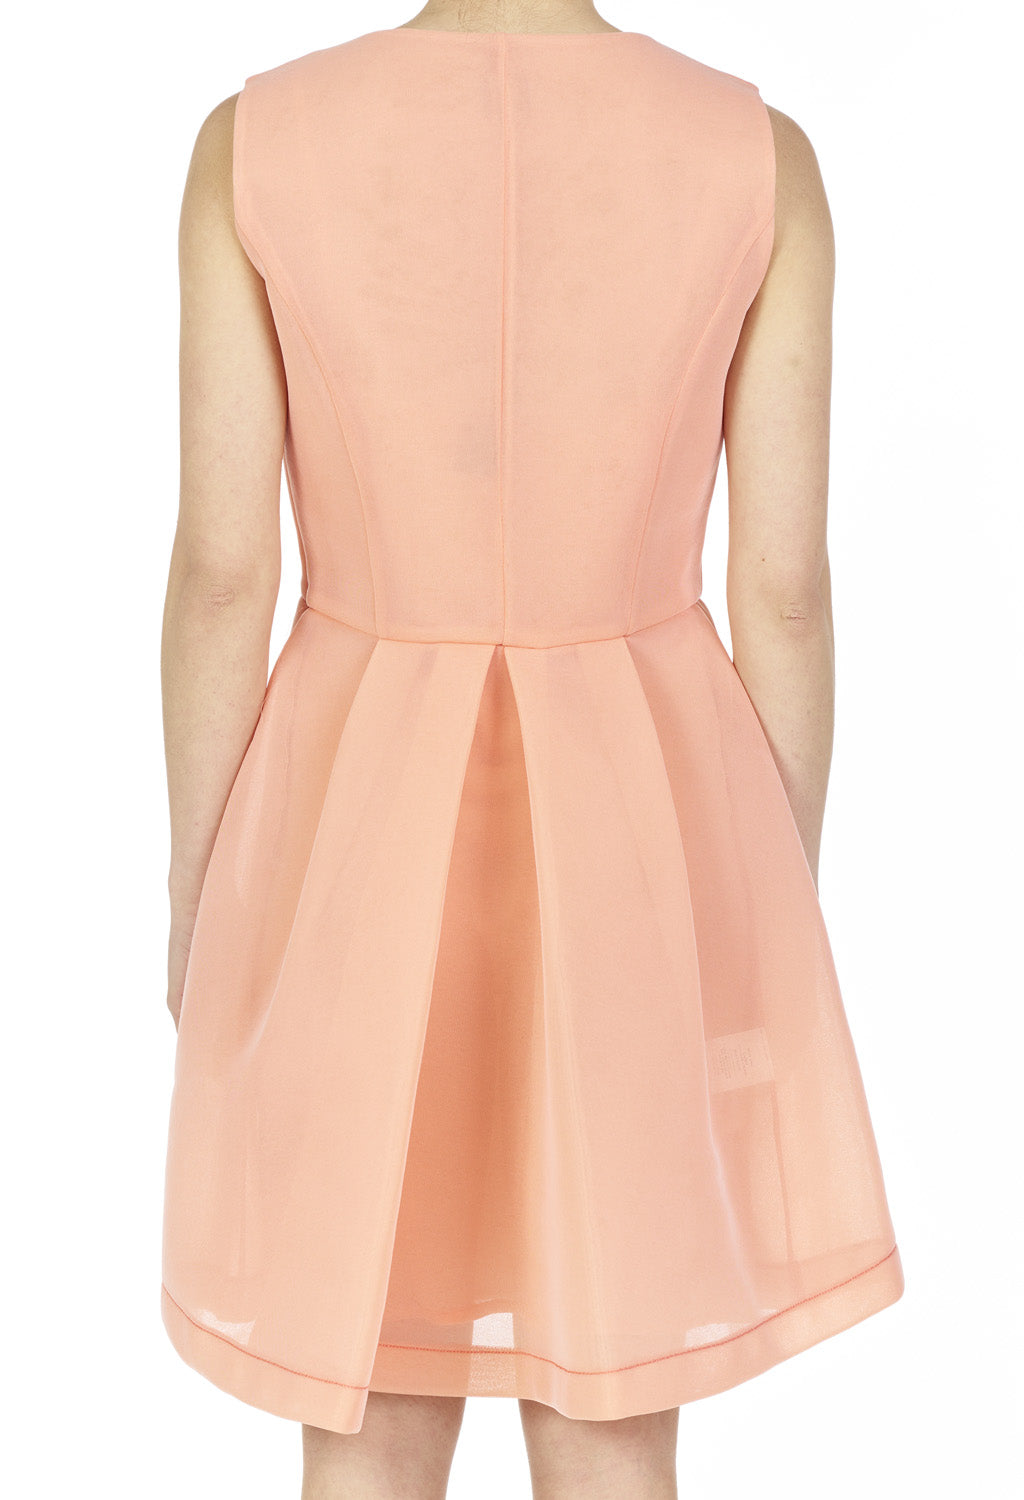 Abito Pinko Rosa In Tulle Pinko Mod. Nastro1 – MISS-UP 80641fb2a92